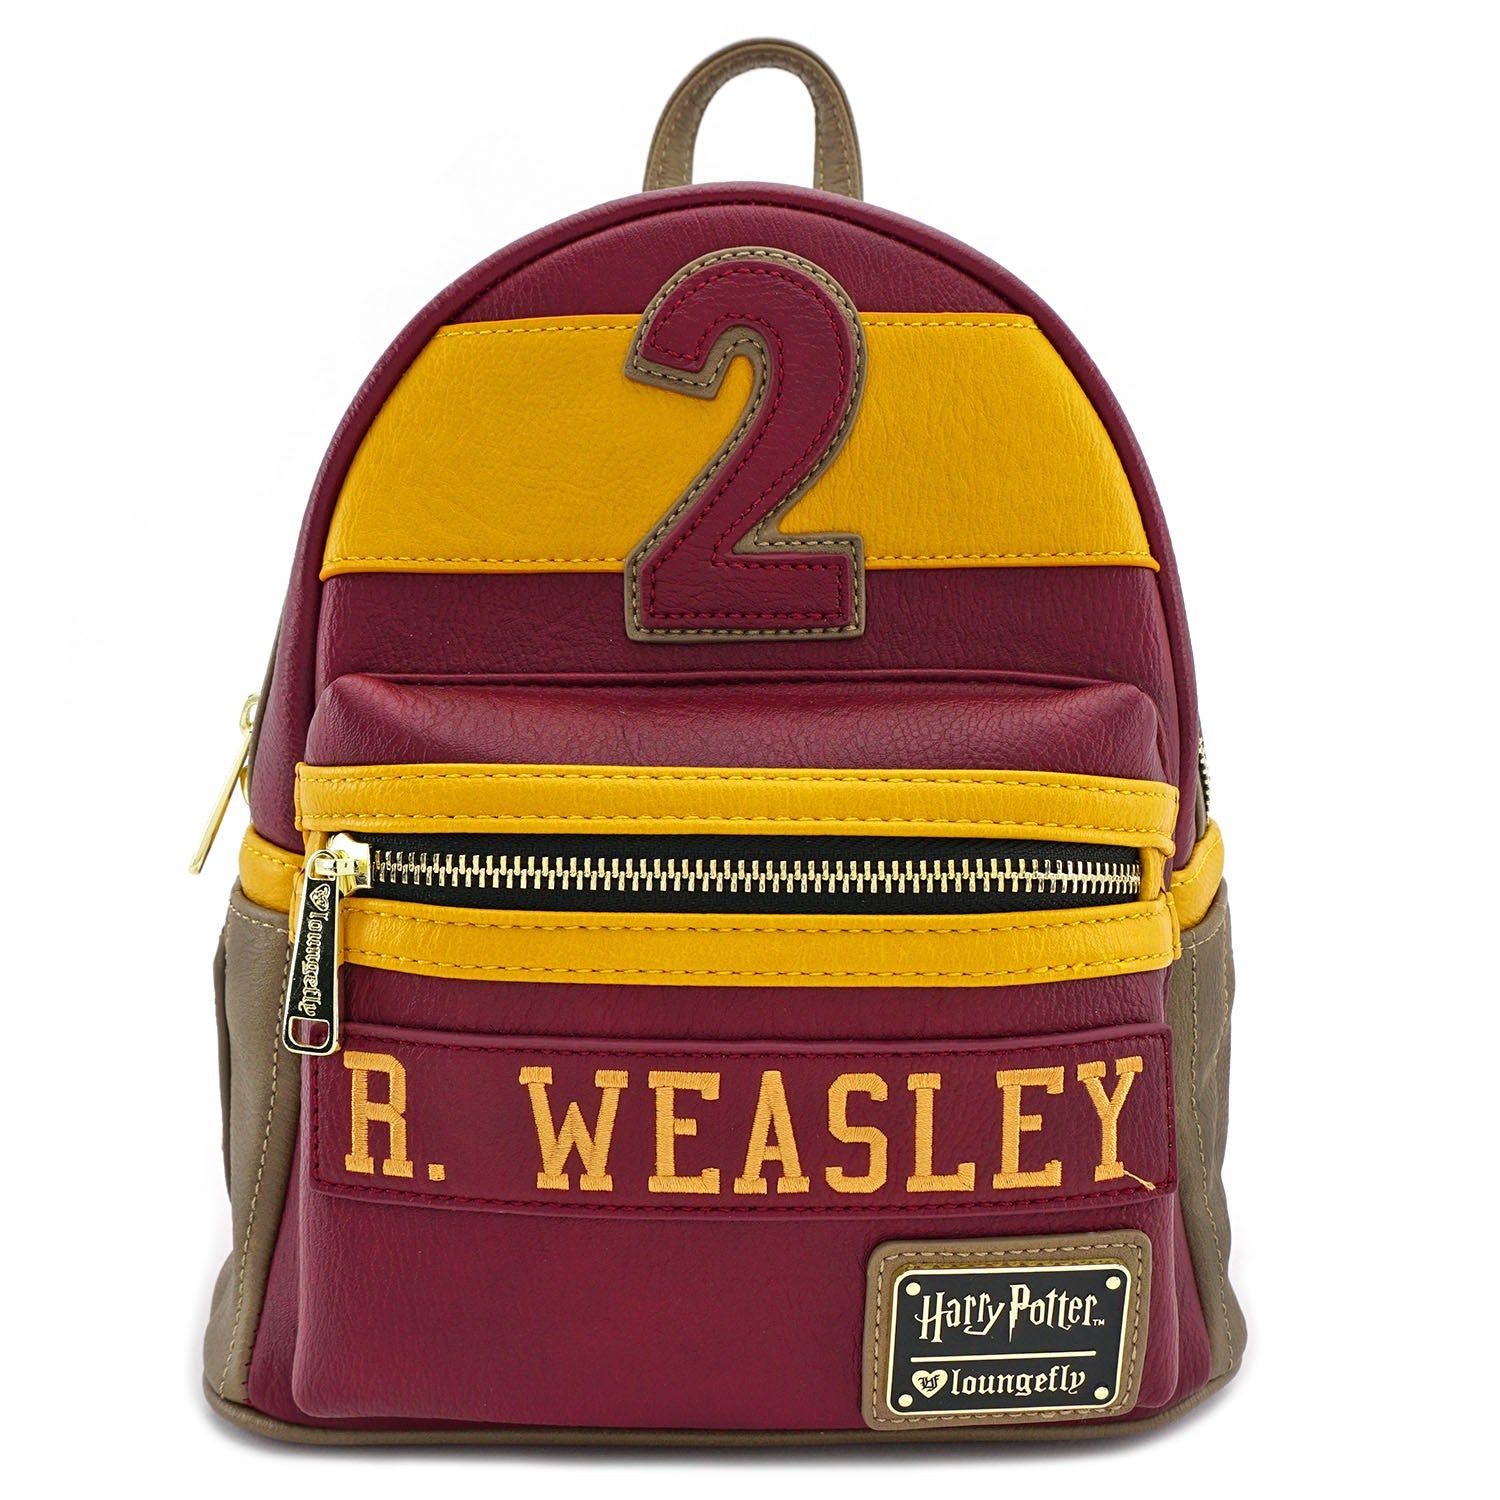 4887256b408 Harry Potter Ron Weasley Gryffindor Mini Backpack Loungefly ...